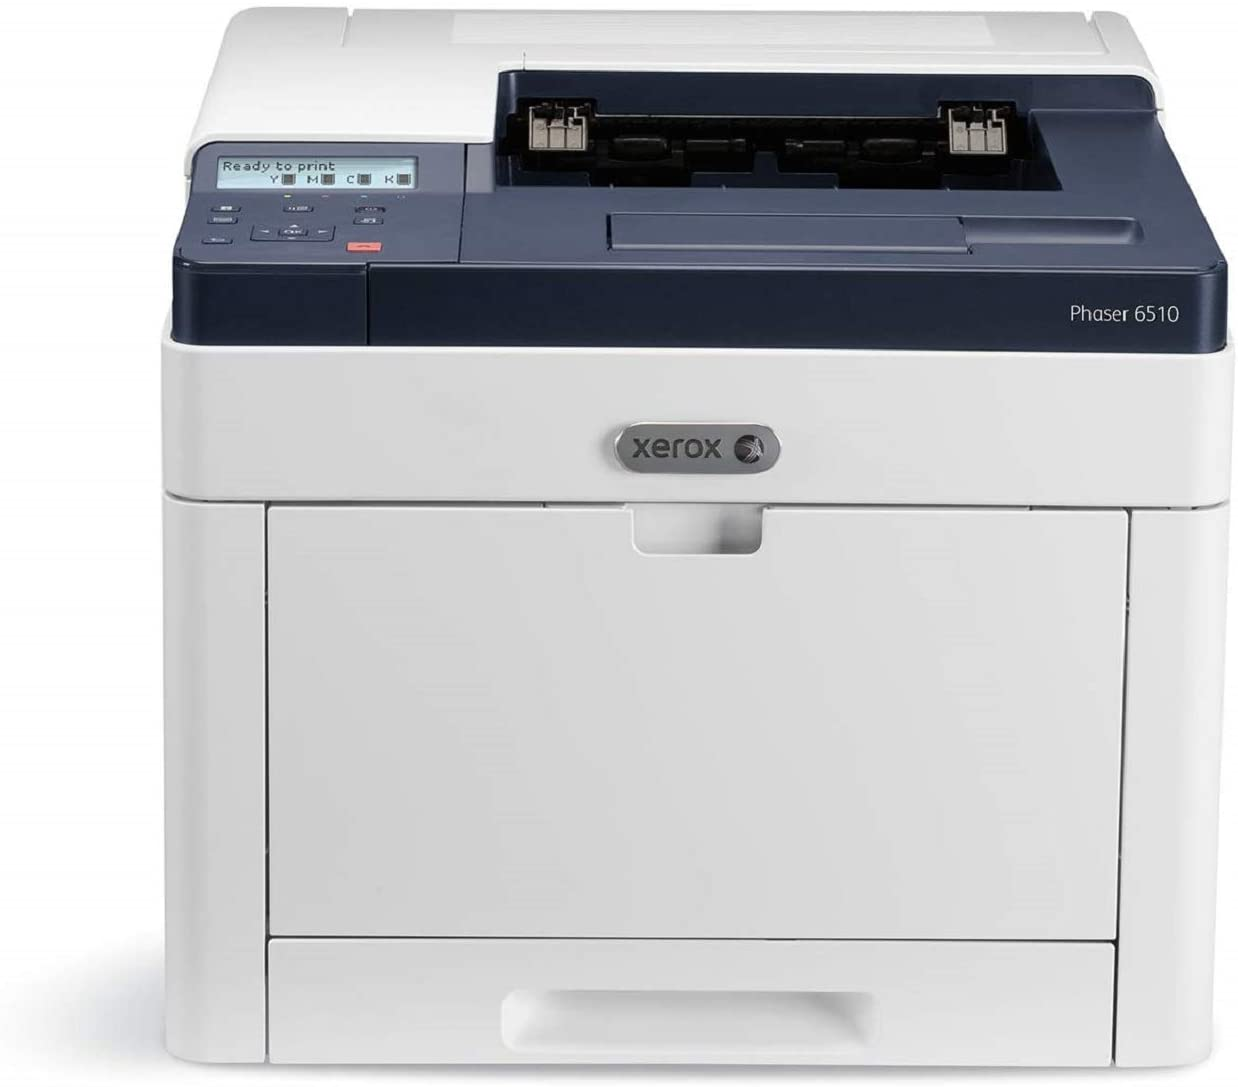 Xerox Phaser 6510dn A4 Colour LED, Laser Printer with Duplex 2-Sided Printing uk reviews